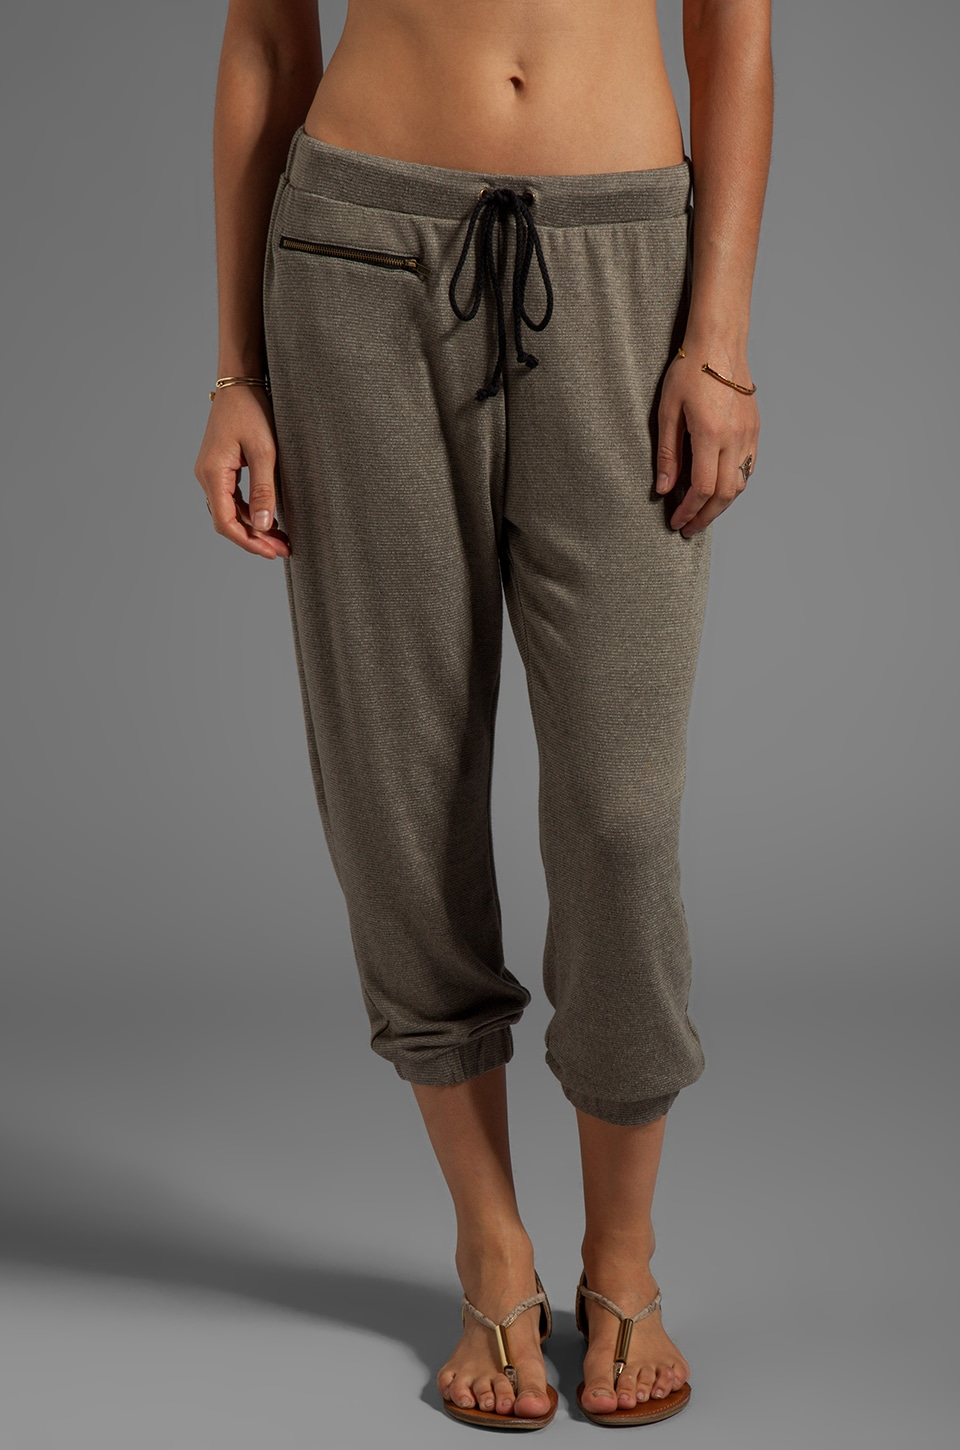 DAYDREAMER Zip Pocket Sweatpants in Army